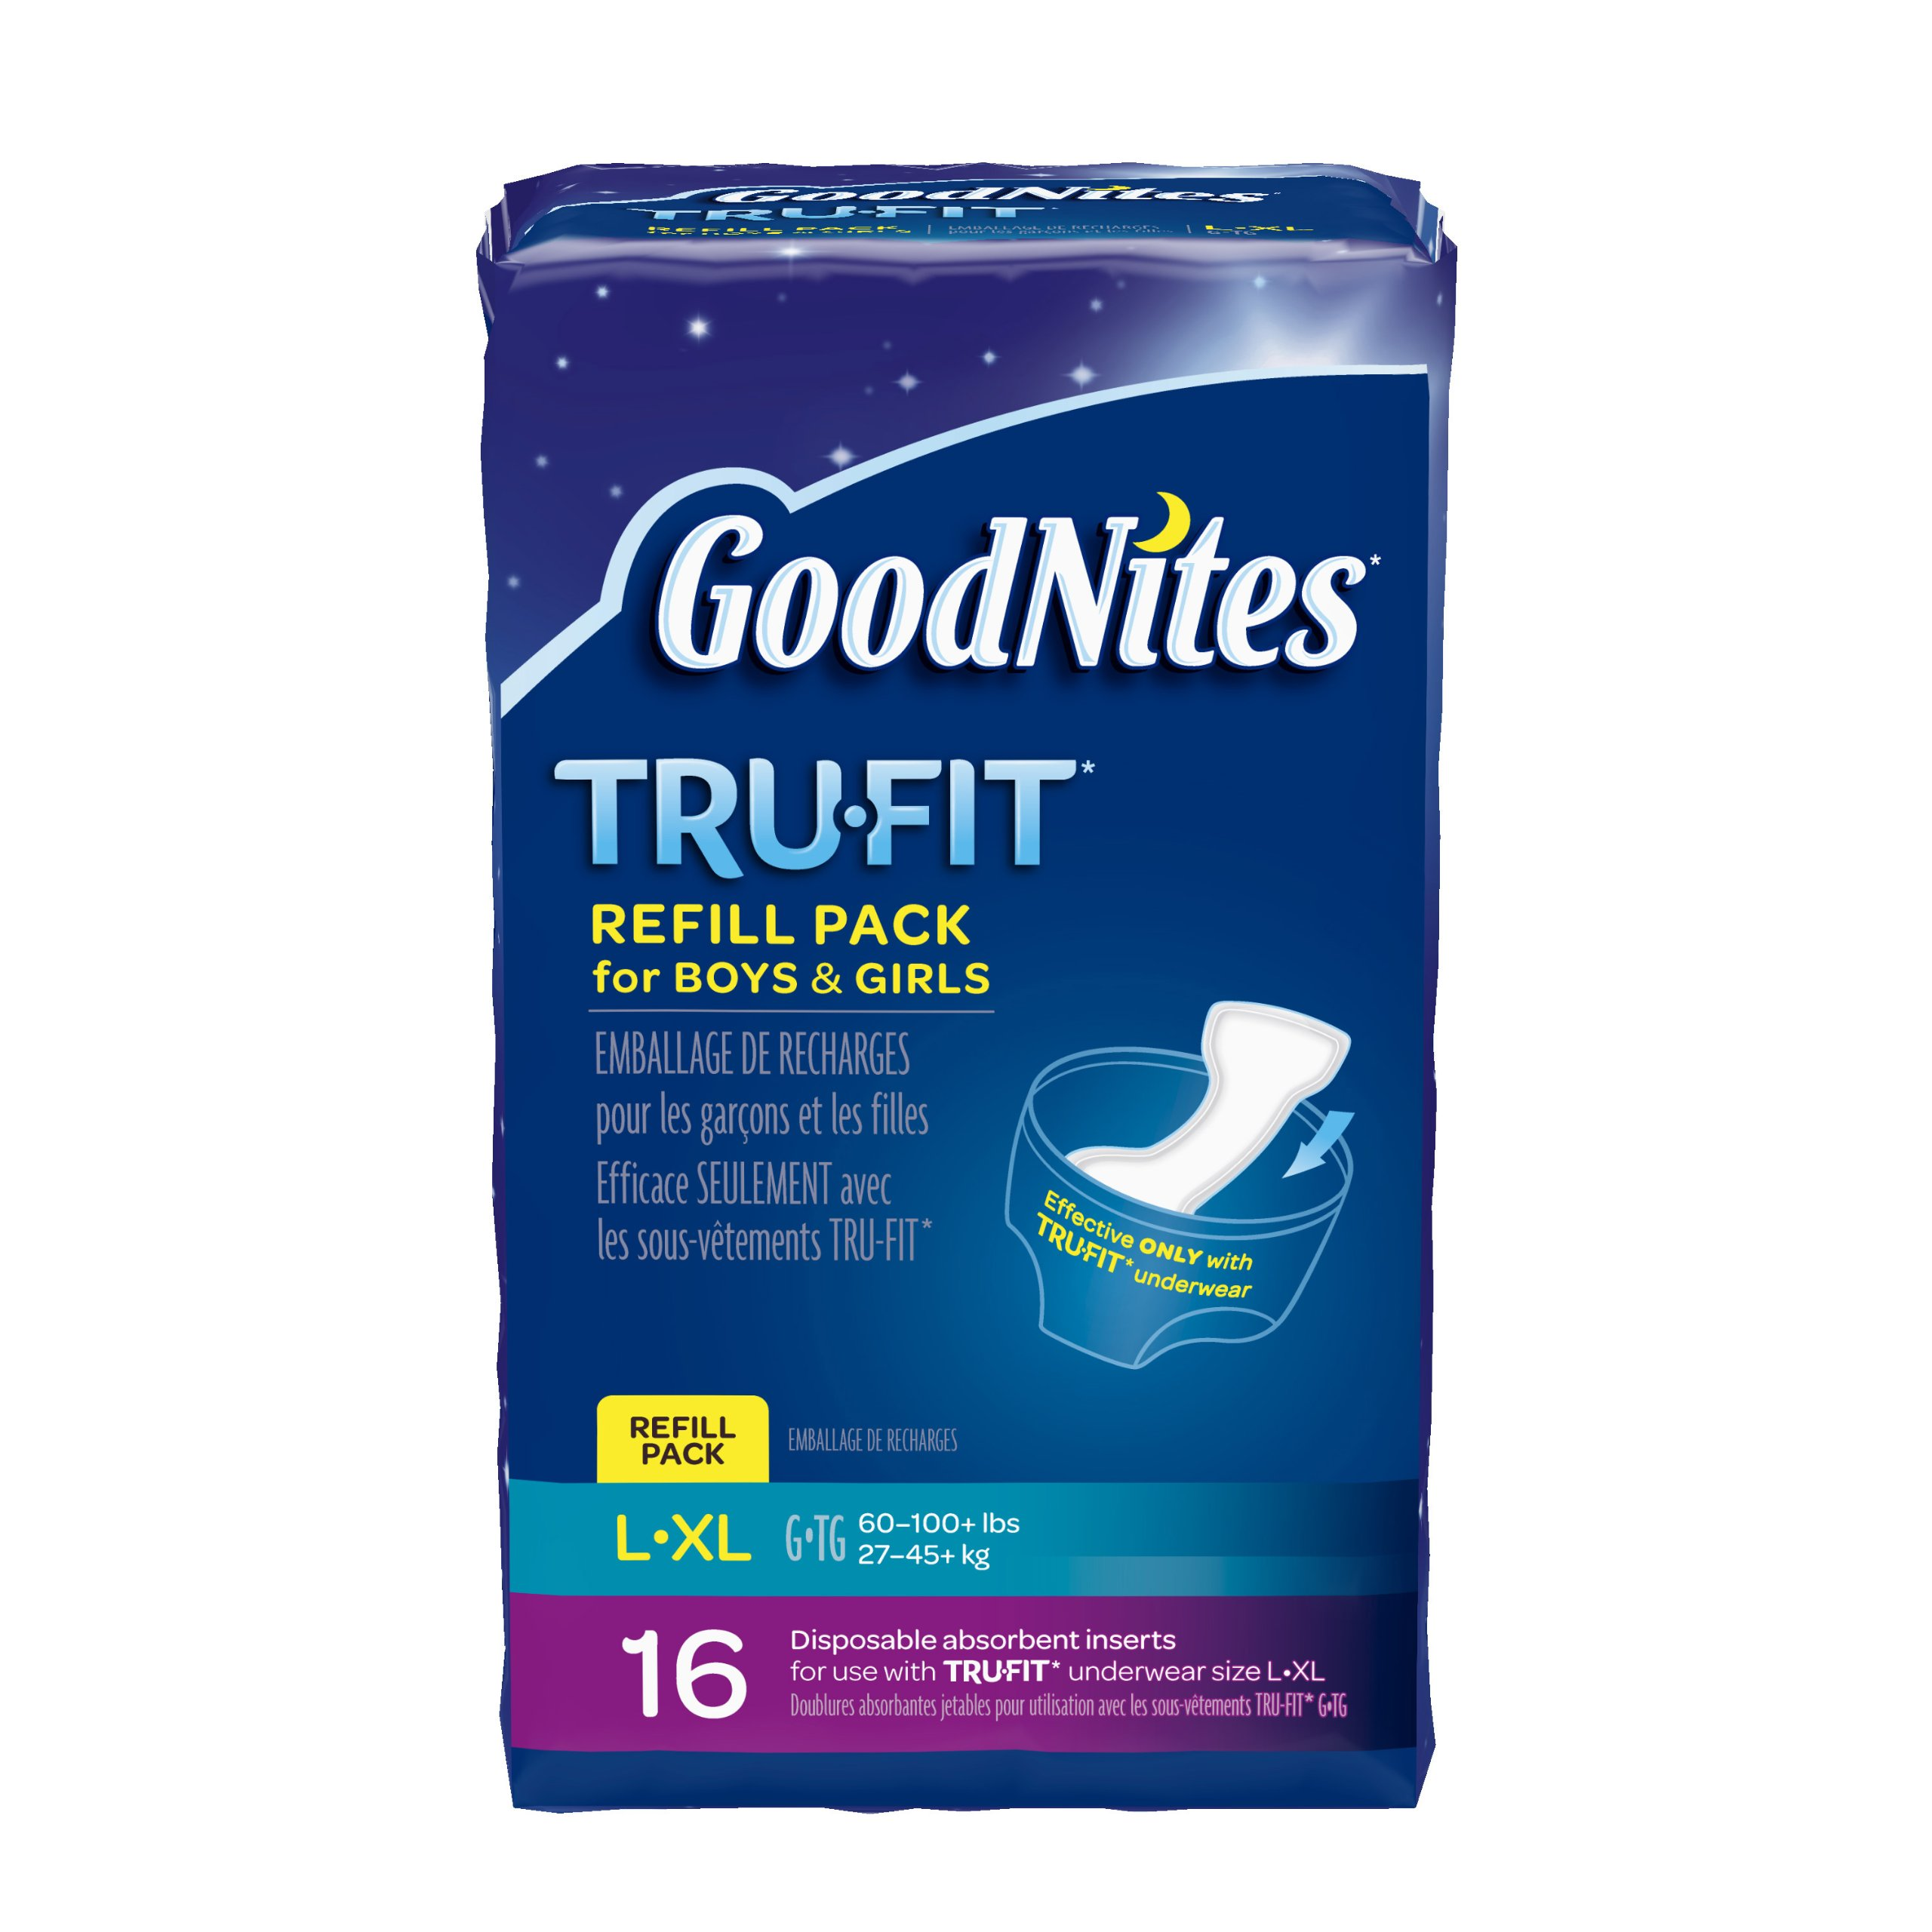 GoodNites TRU-FIT Disposable Absorbent Inserts for Boys & Girls, Refill Pack, Size Large/Extra Large, 16 ct (Pack of 3)